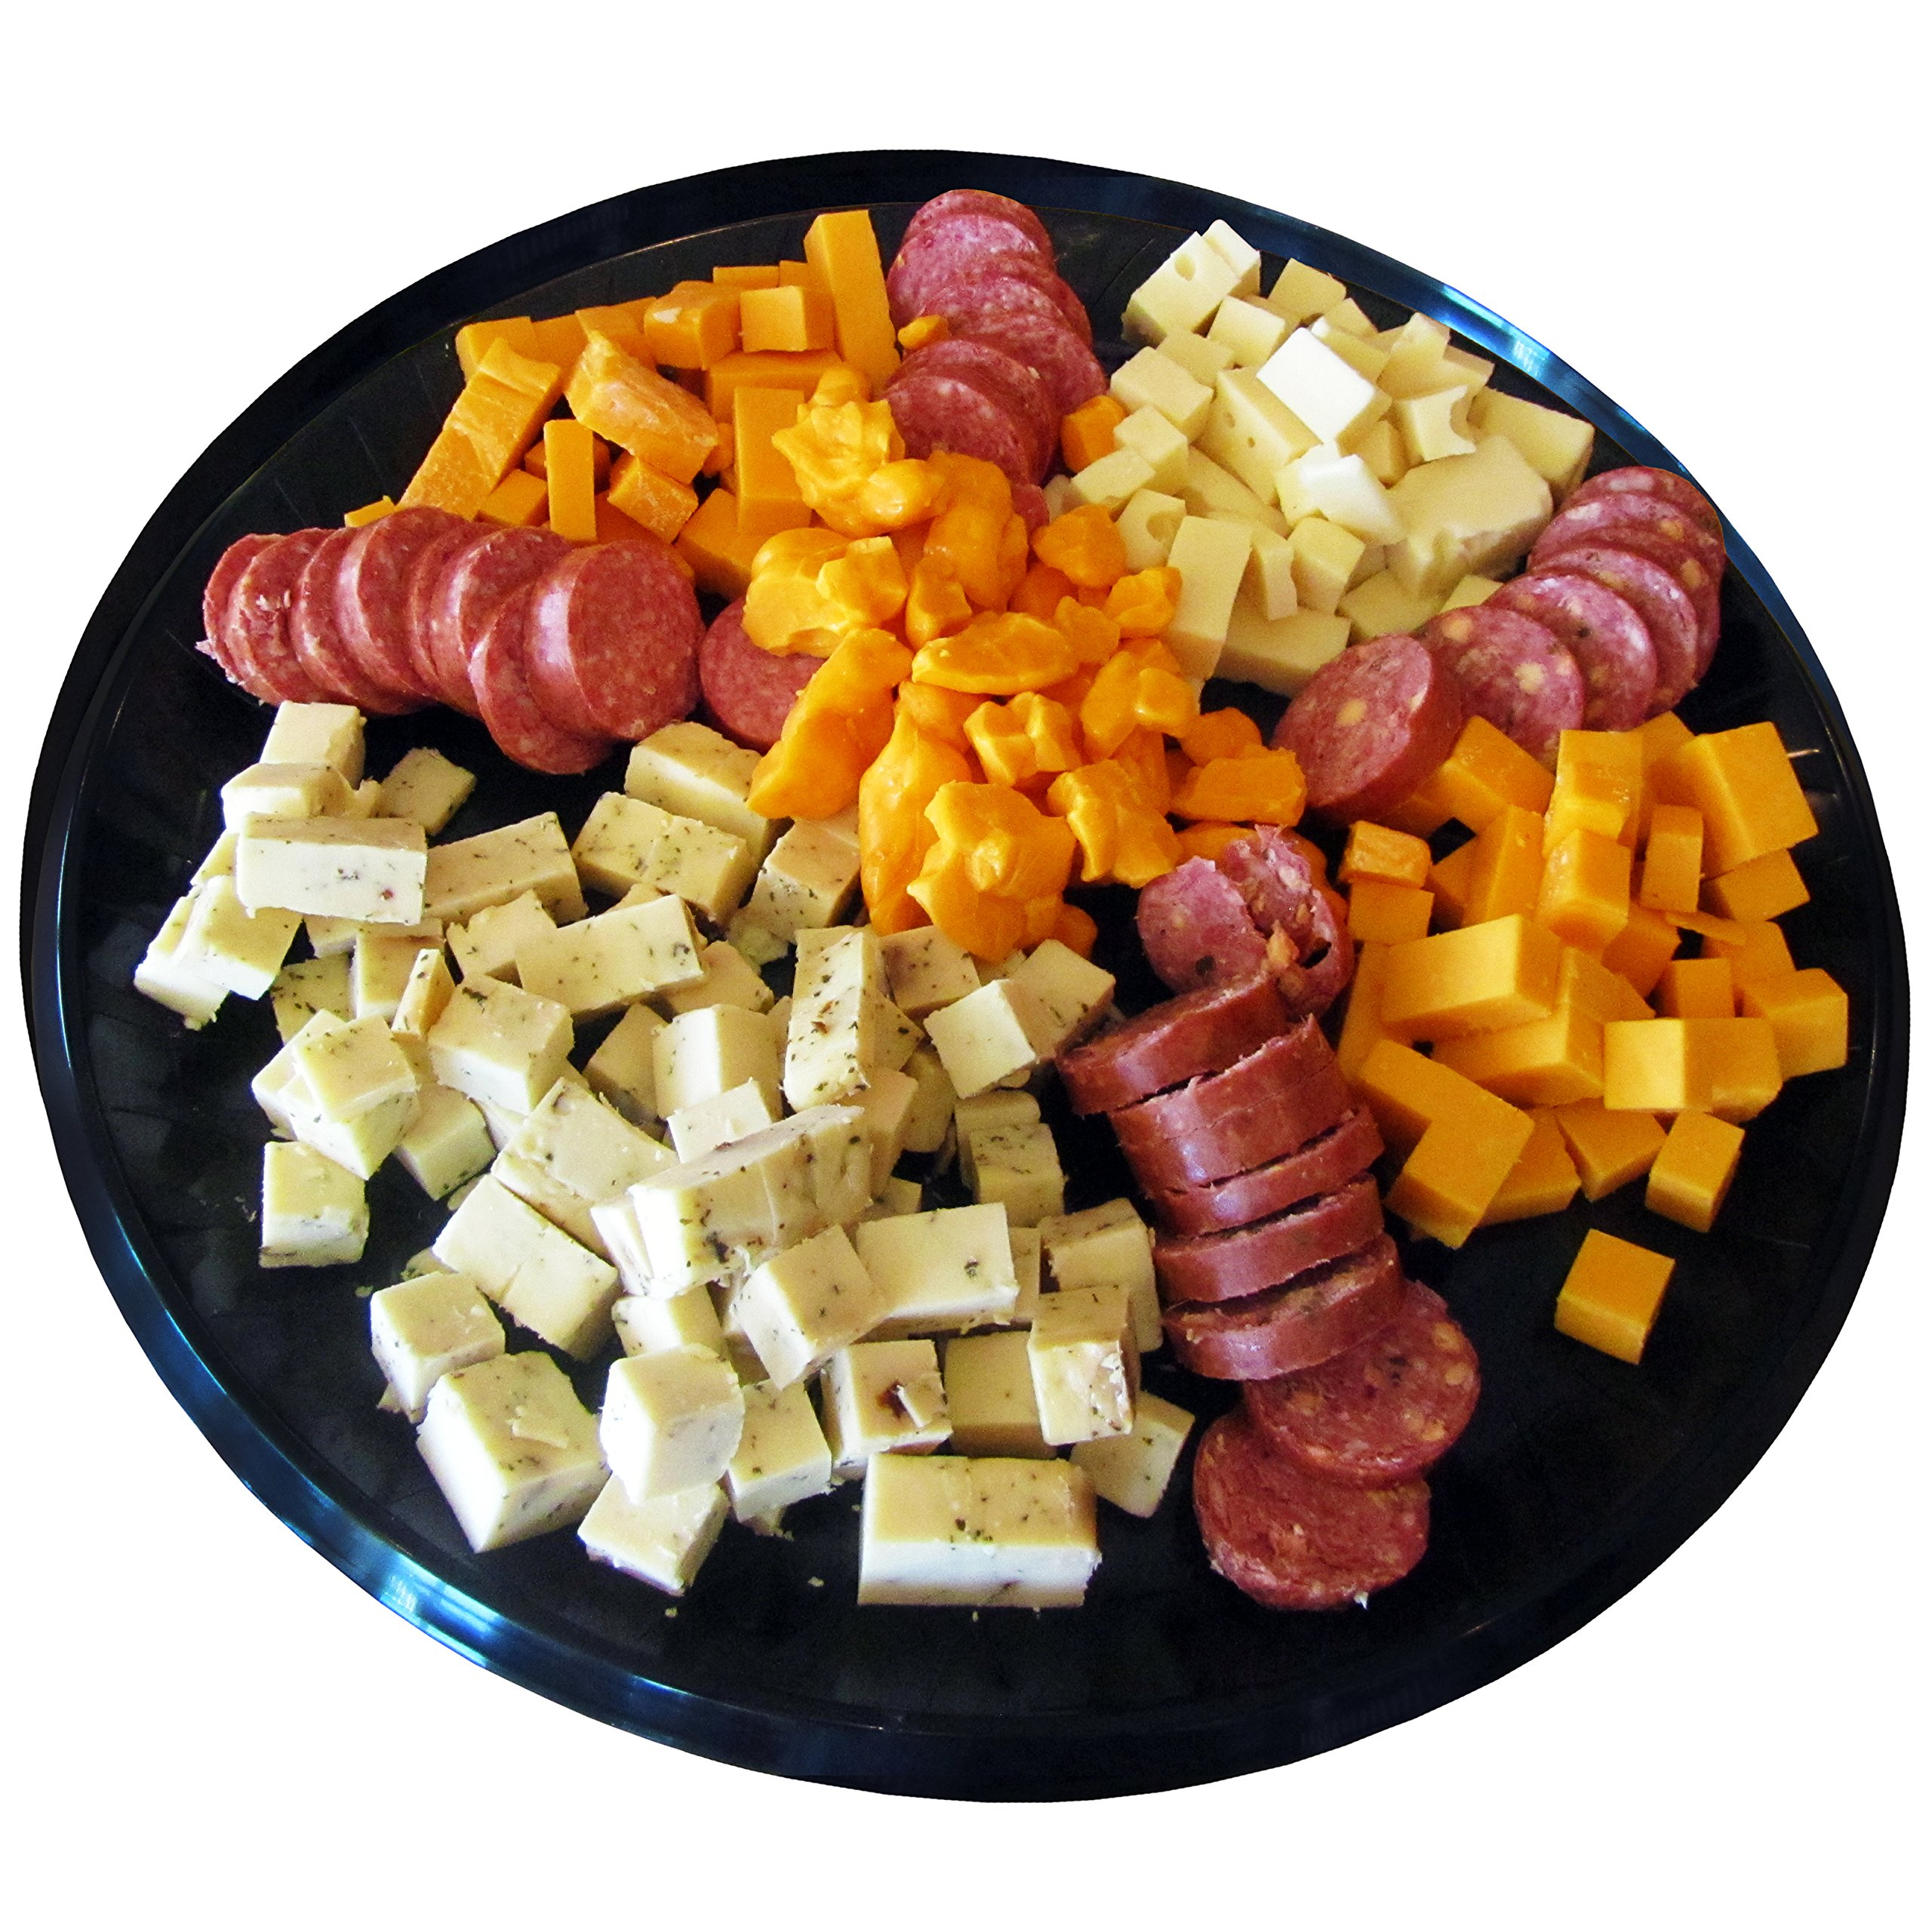 Gourmet Variety Sampler Gift Basket - Smoked Summer Sausages & 100% Wisconsin Cheeses - GLUTEN-FREE - Perfect Cheese and Sausage Snack!! by WISCONSIN'S BEST and WISCONSIN CHEESE COMPANY (Image #2)